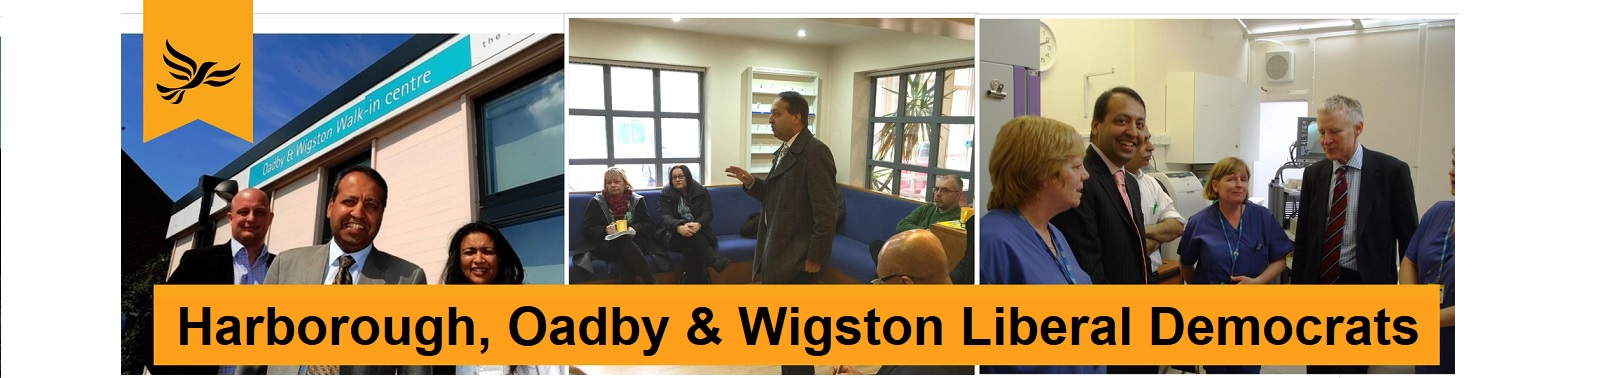 Harborough, Oadby and Wigston Liberal Democrats